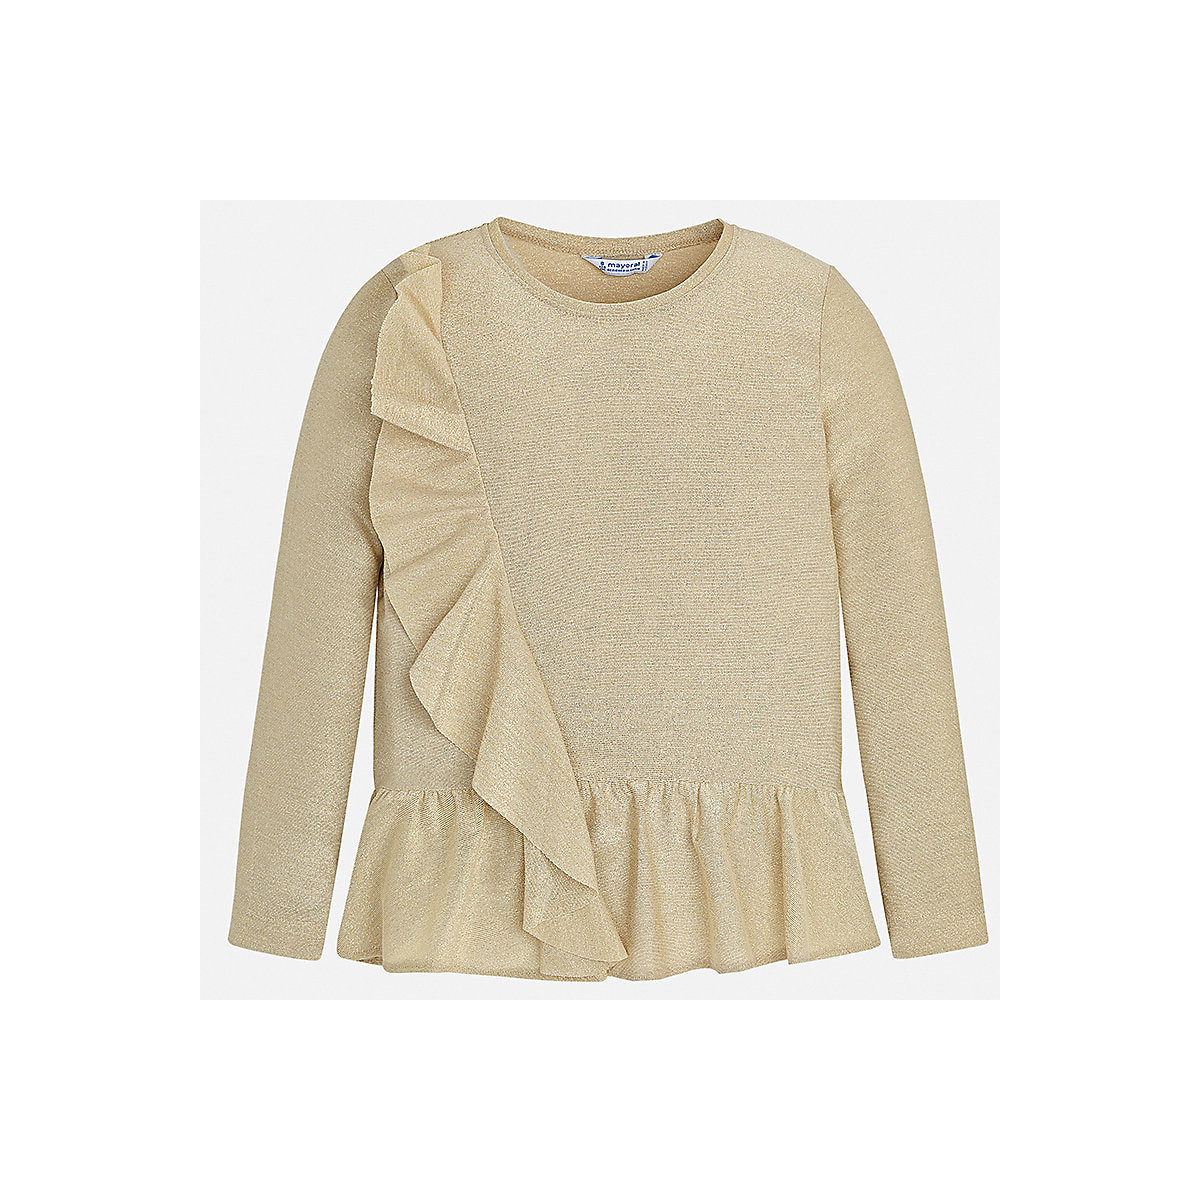 MAYORAL Blouses & Shirts 8849012 Girls Polyester  clothes baby boy children child wear blouses